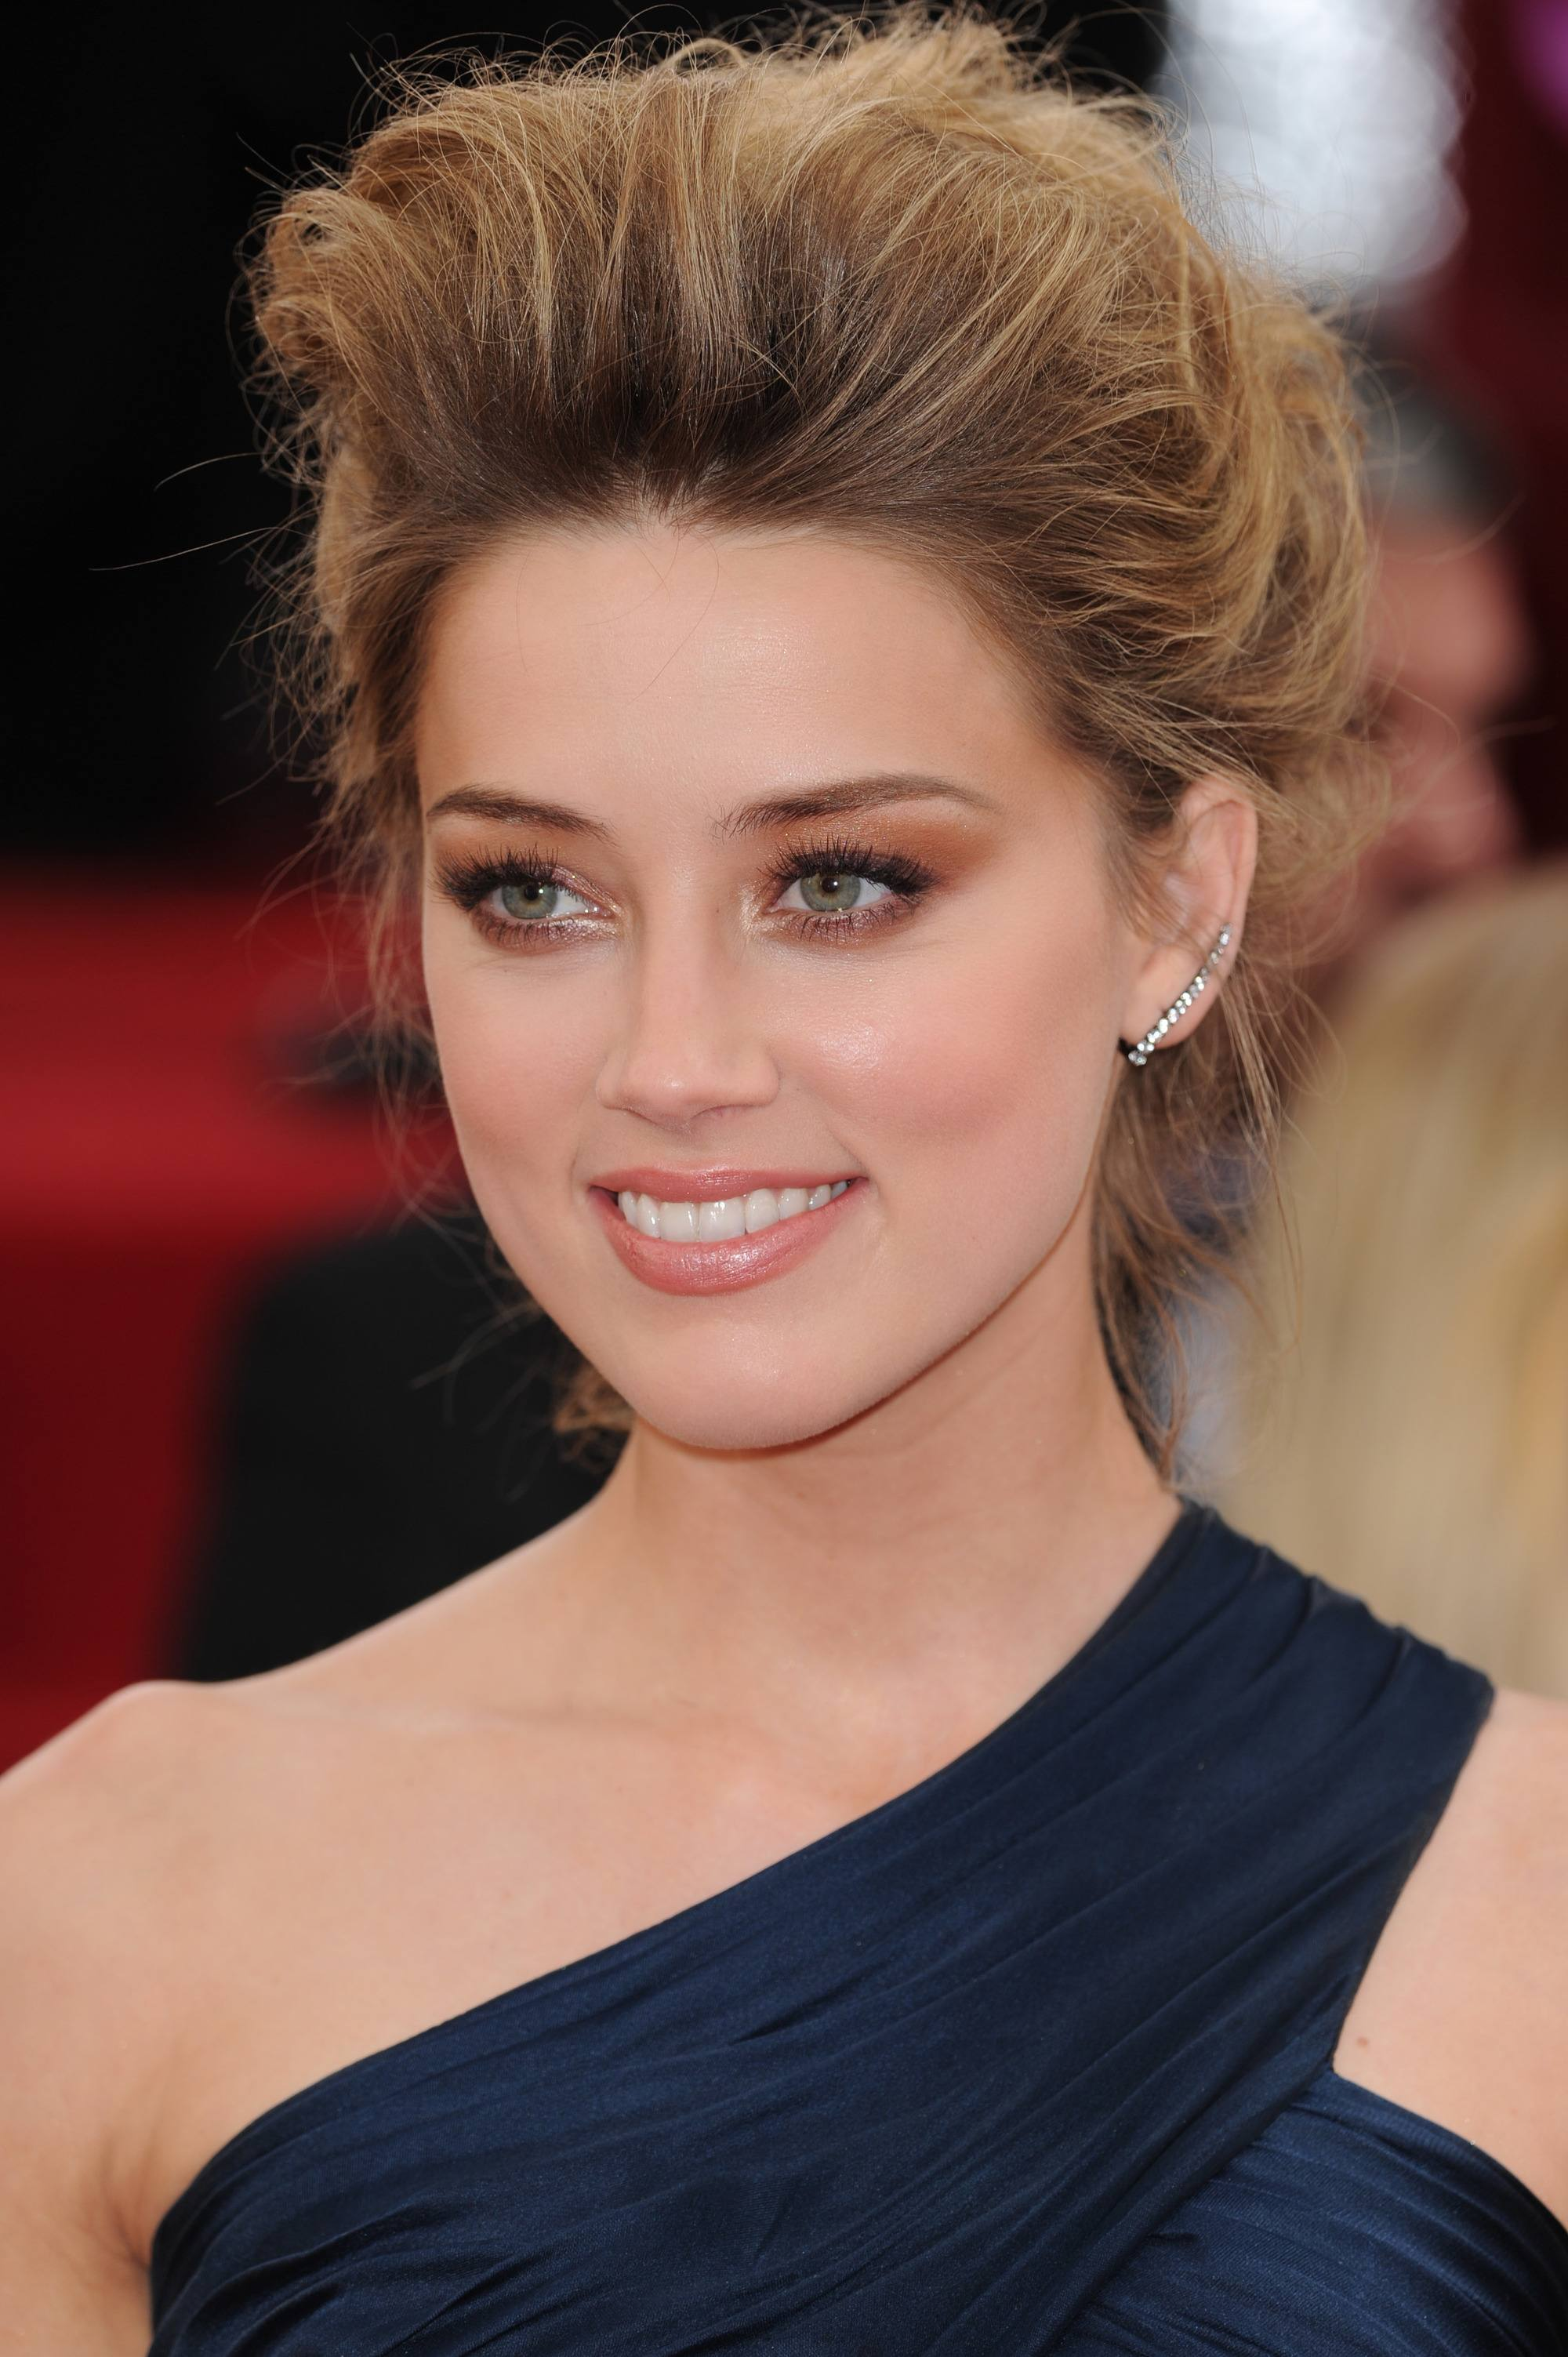 actress amber heard with teased bouffant hair and a one shoulder navy dress on the red carpet